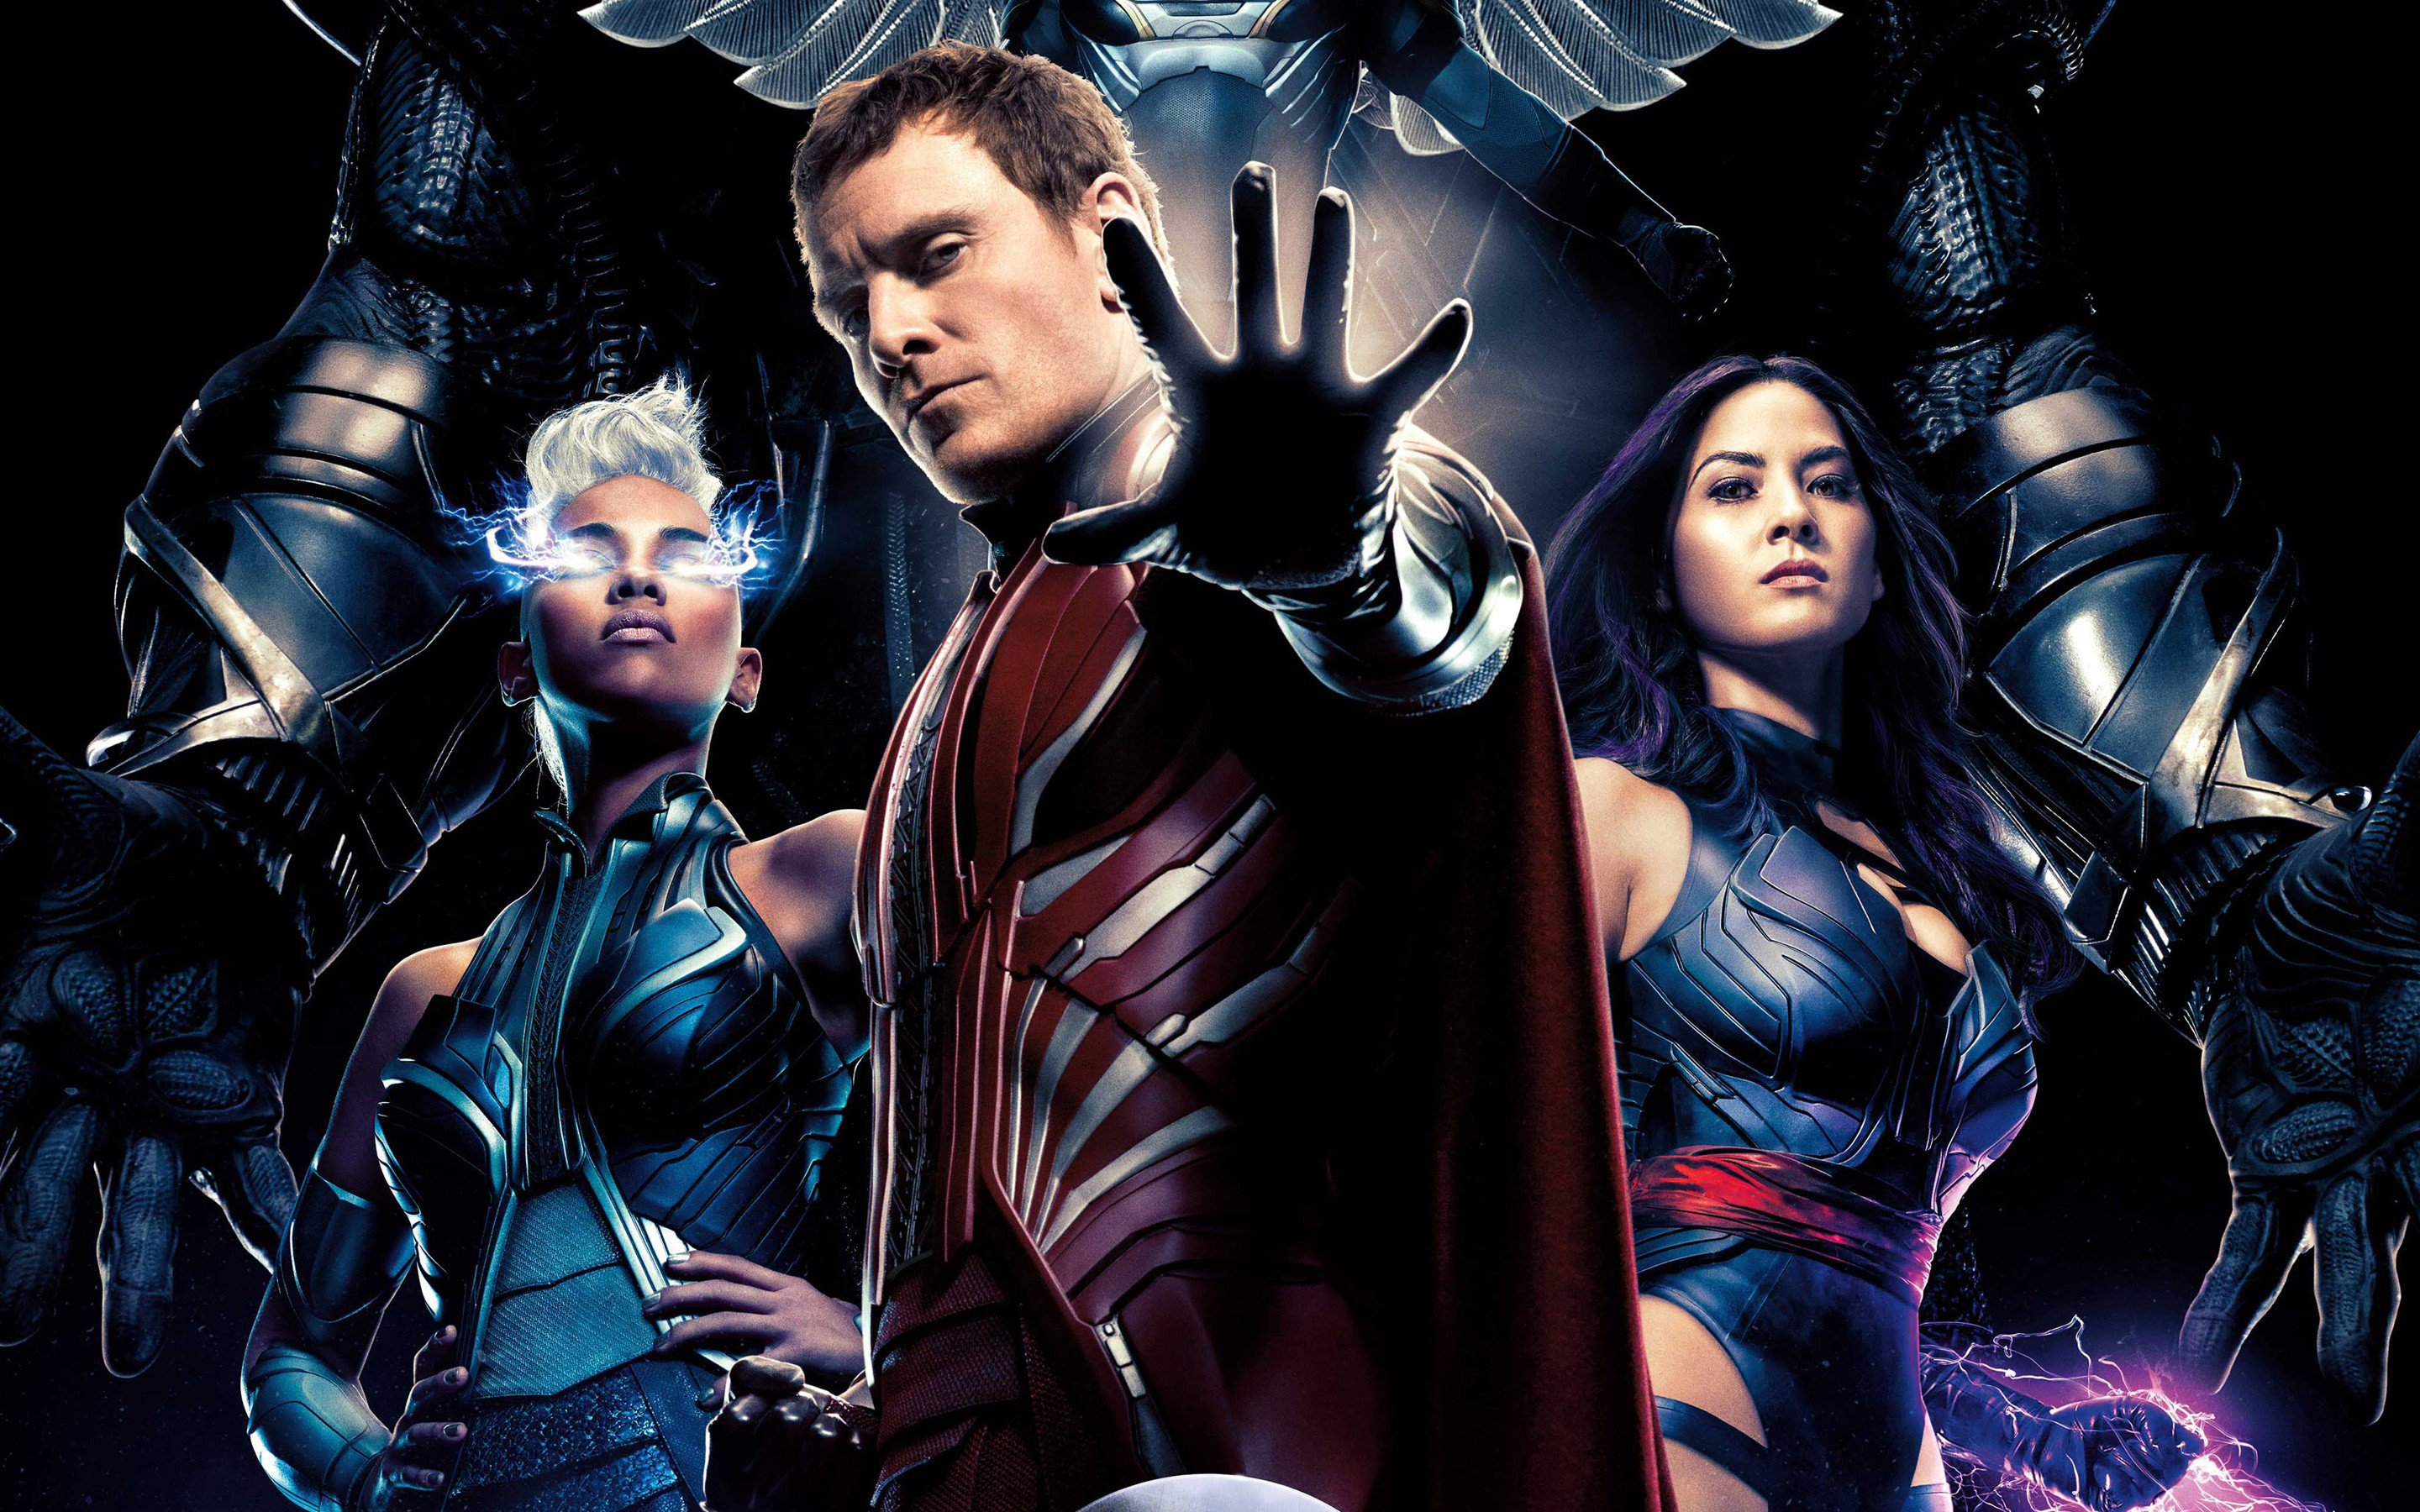 X Men Apocalypse 2016 Hd Movies 4k Wallpapers Images Backgrounds Photos And Pictures